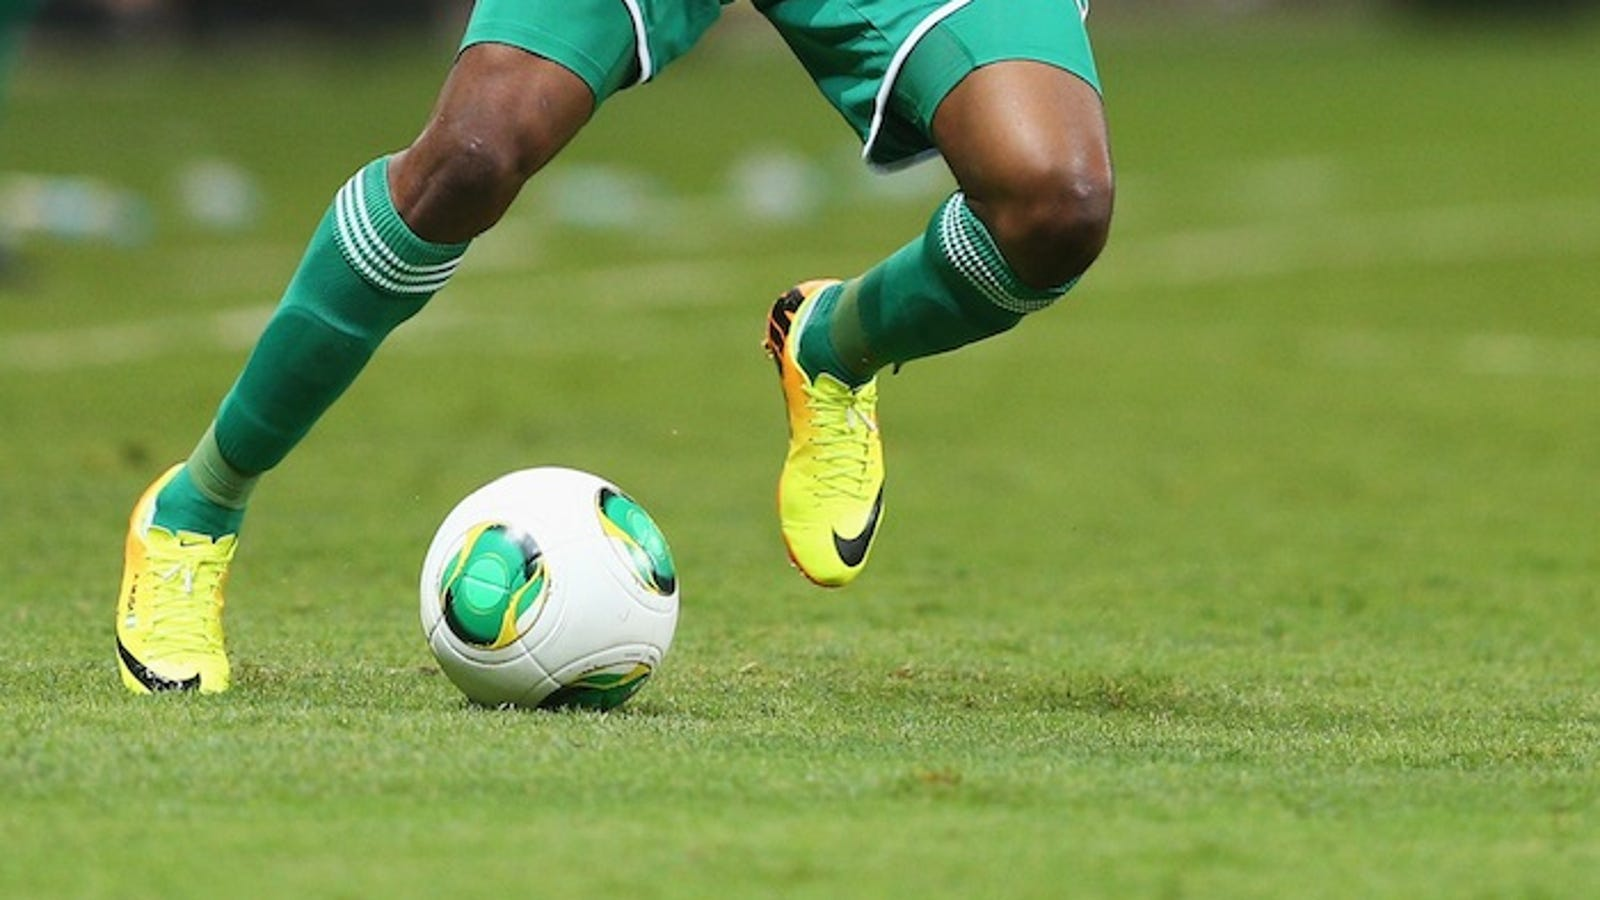 Nigeria Decides That 79-0 And 67-0 Soccer Matches May Have Been Fixed